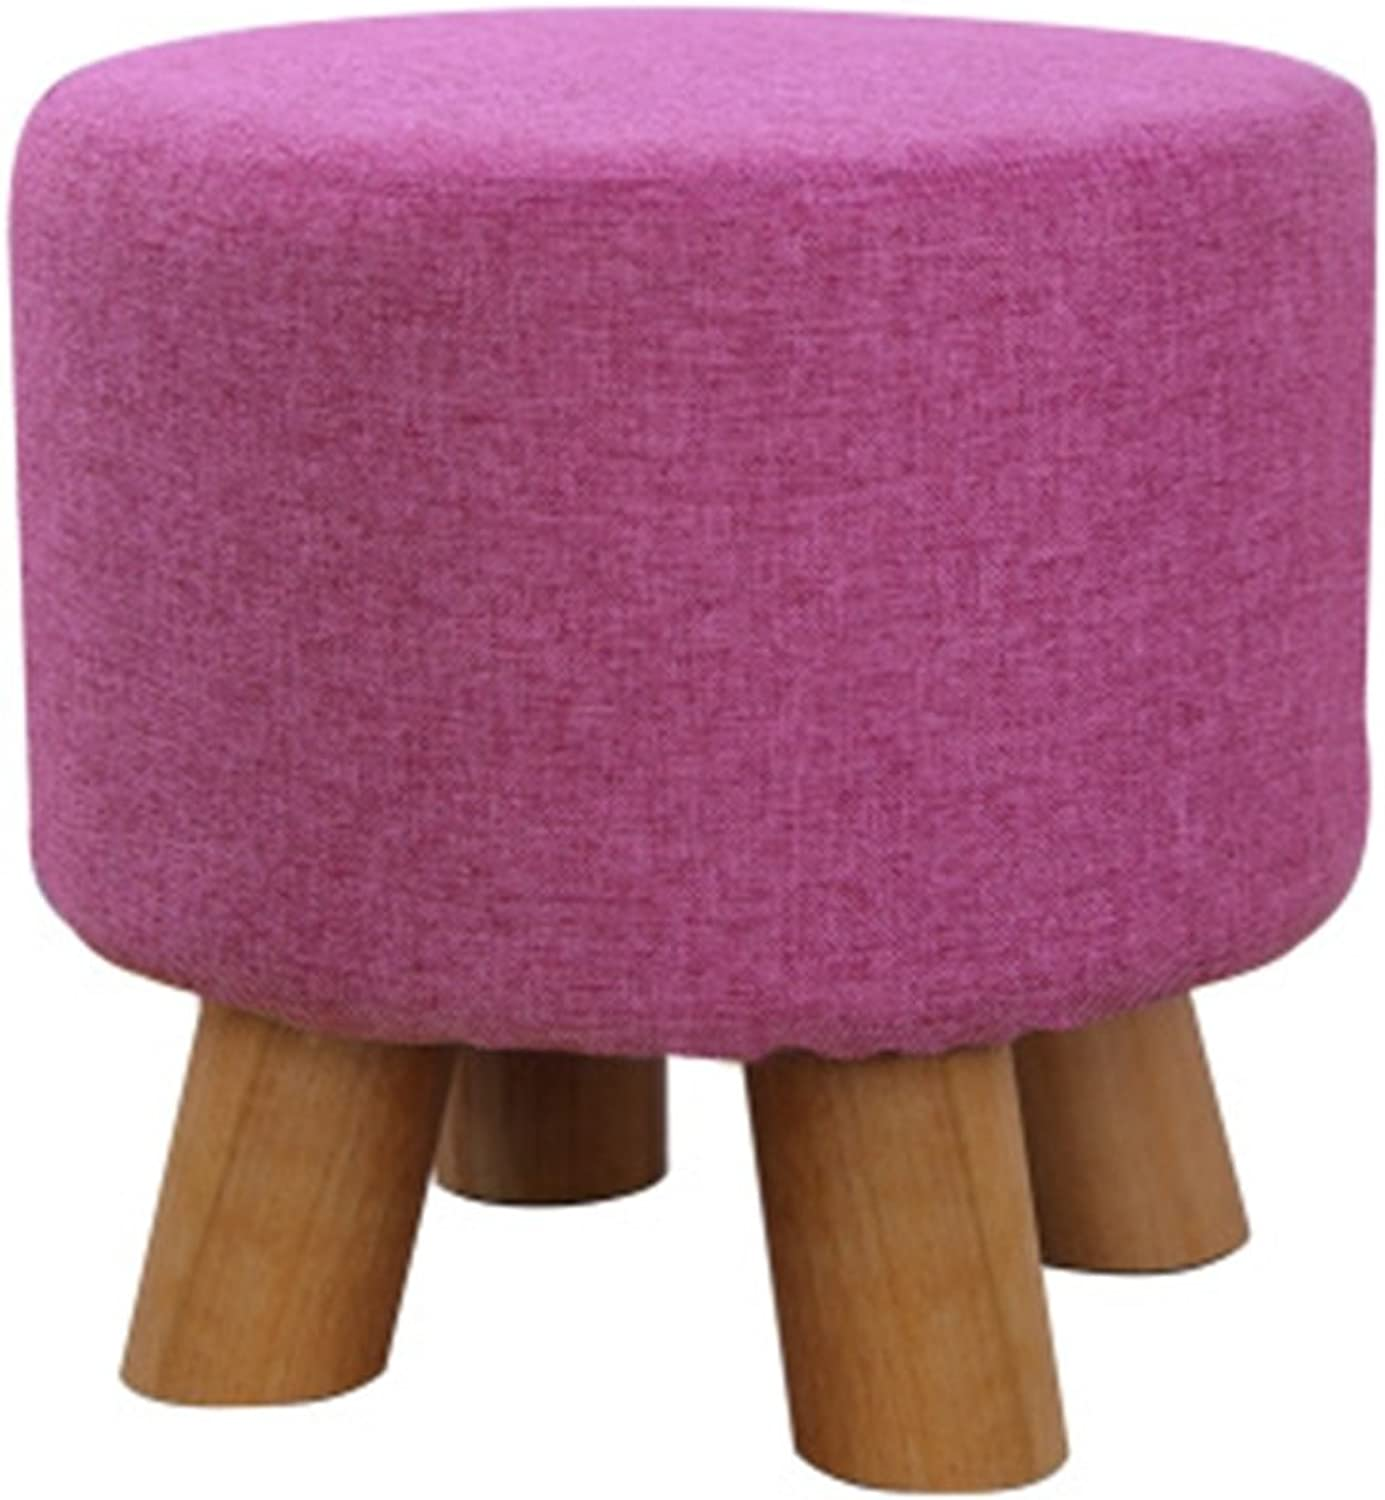 Upholstered Footstool Home Fashion Creative Fabric Sofa Small Stool Beech Multifunction Economic Cotton Linen Cover Removable and Washable Round Size  28cm × 29cm